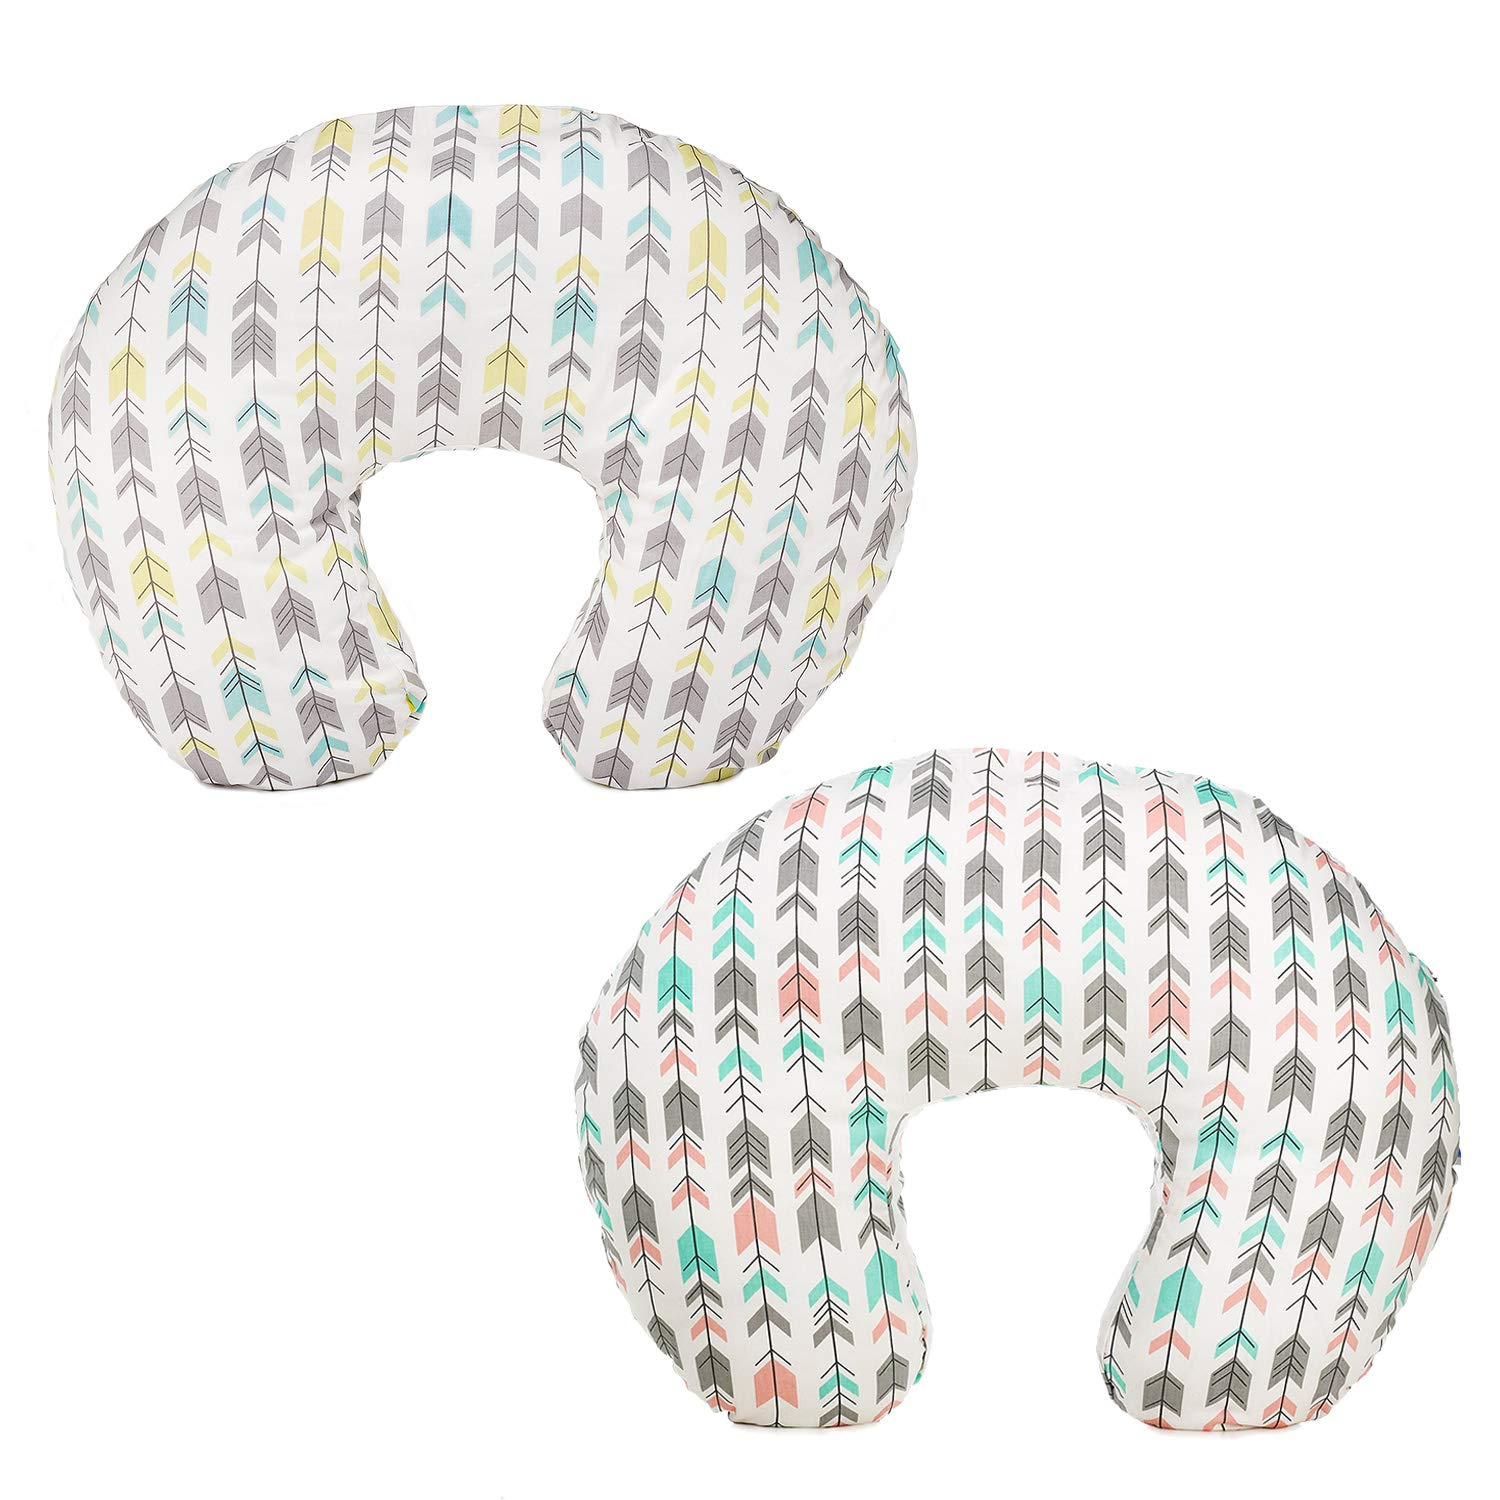 Org Store Premium Nursing Pillow Cover   Slipcover for Breastfeeding Pillows   Fits Most Boppy Pillows (Multi-Color Arrows) (2 Pack)